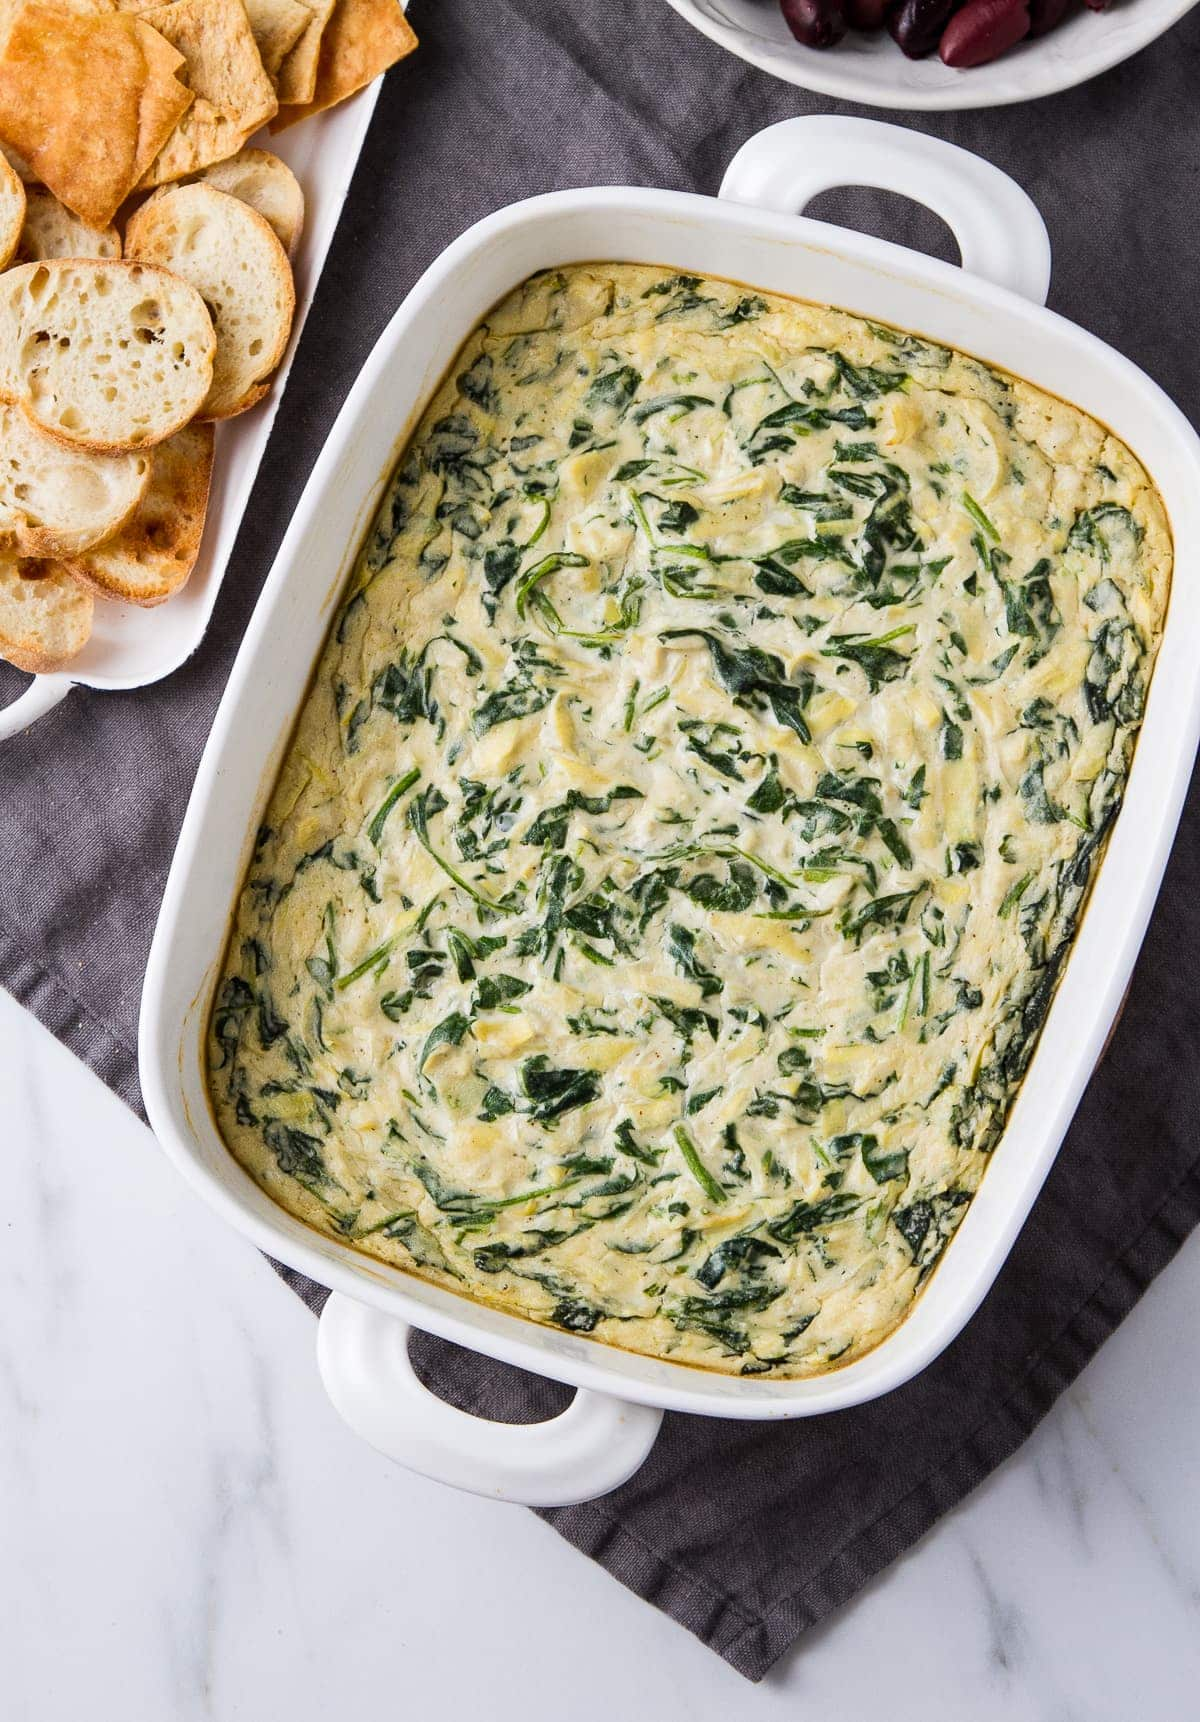 top down view of prepared vegan spinach artichoke dip with items surrounded.